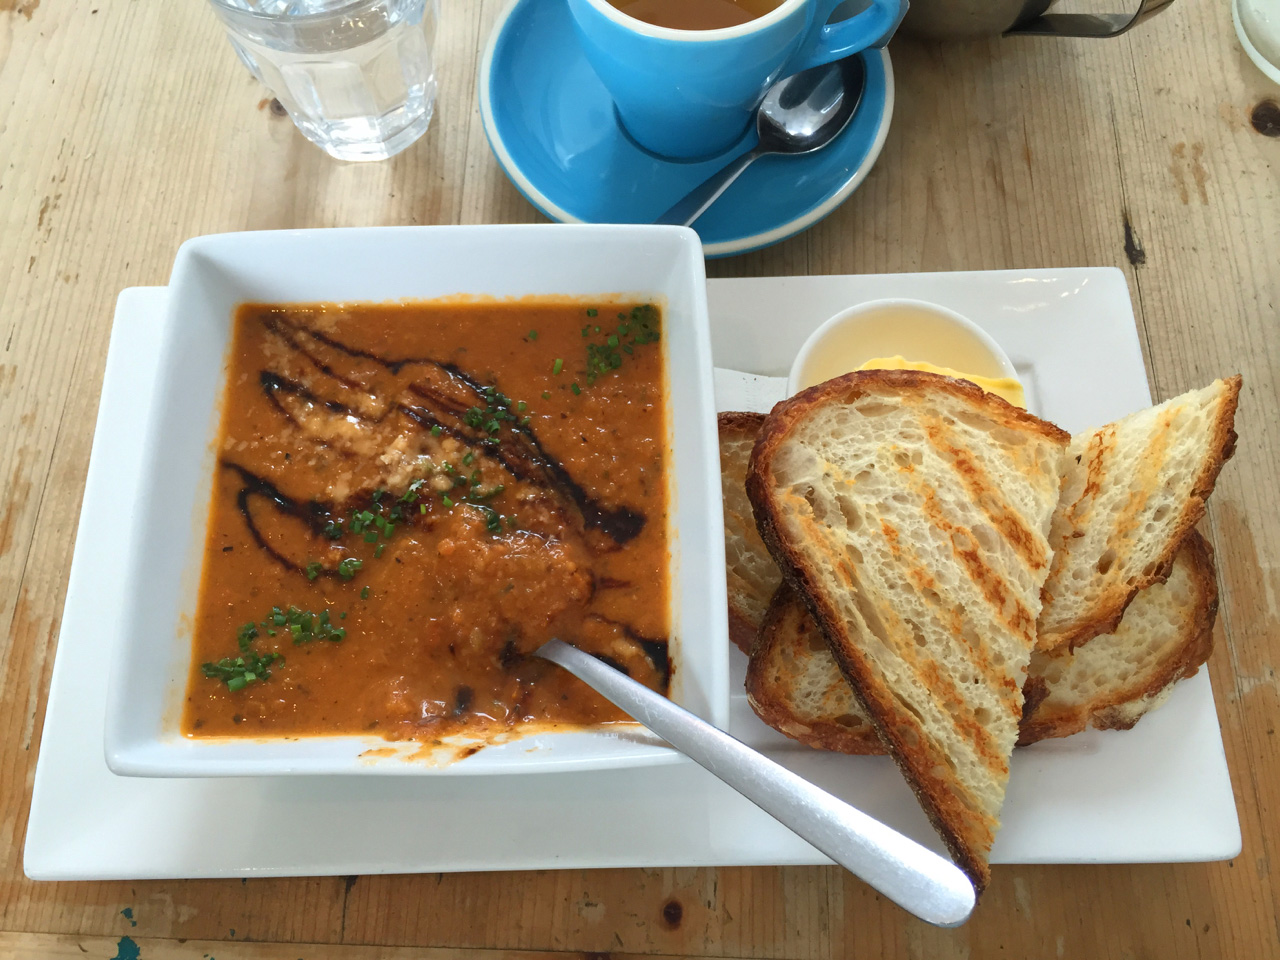 I had roasted tomato, dill and pesto soup with toasted sourdough bread. Yum!